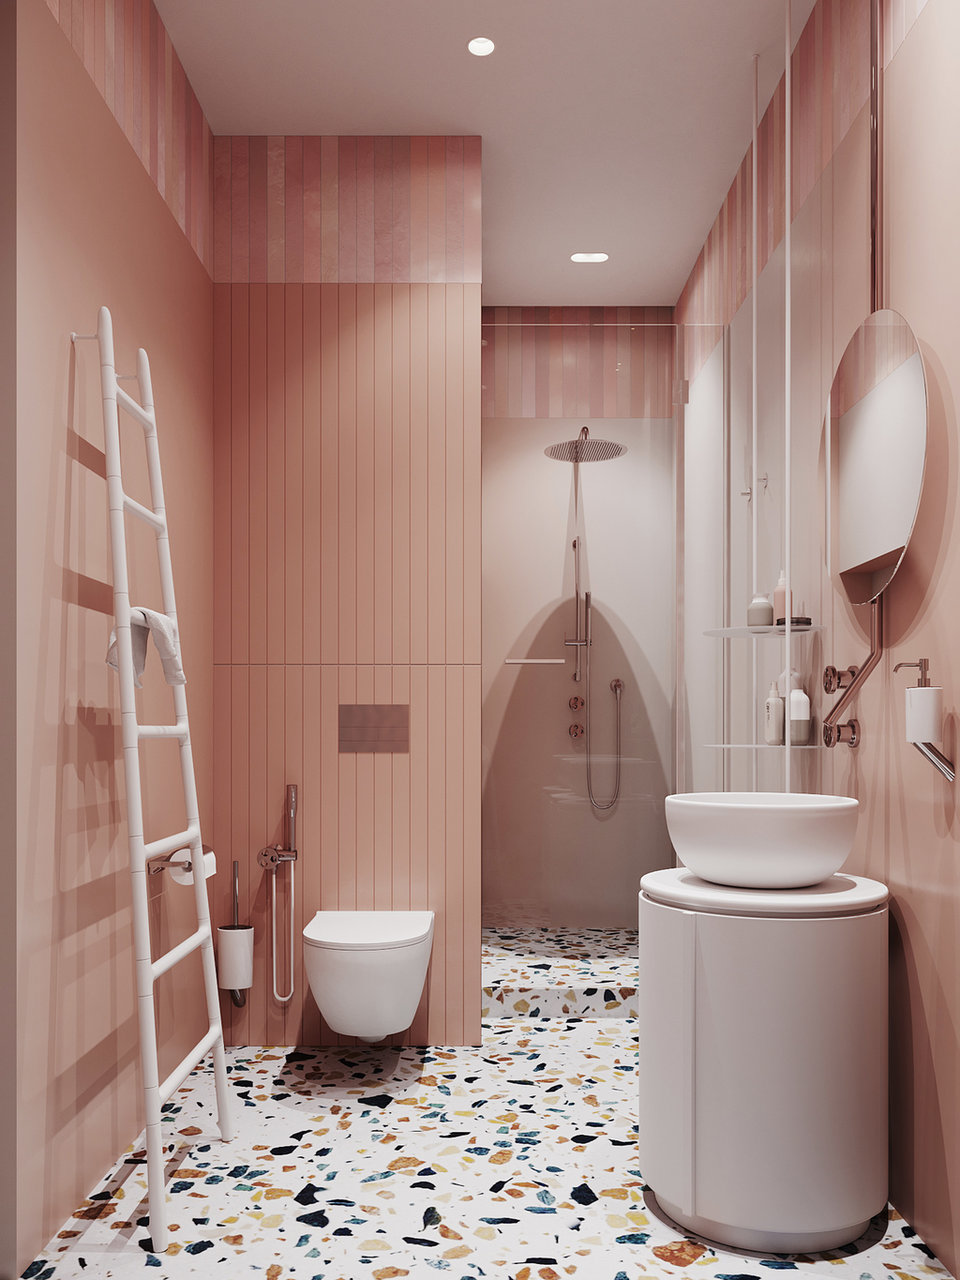 Key Trends For Bathroom Design In 2019 Design Build